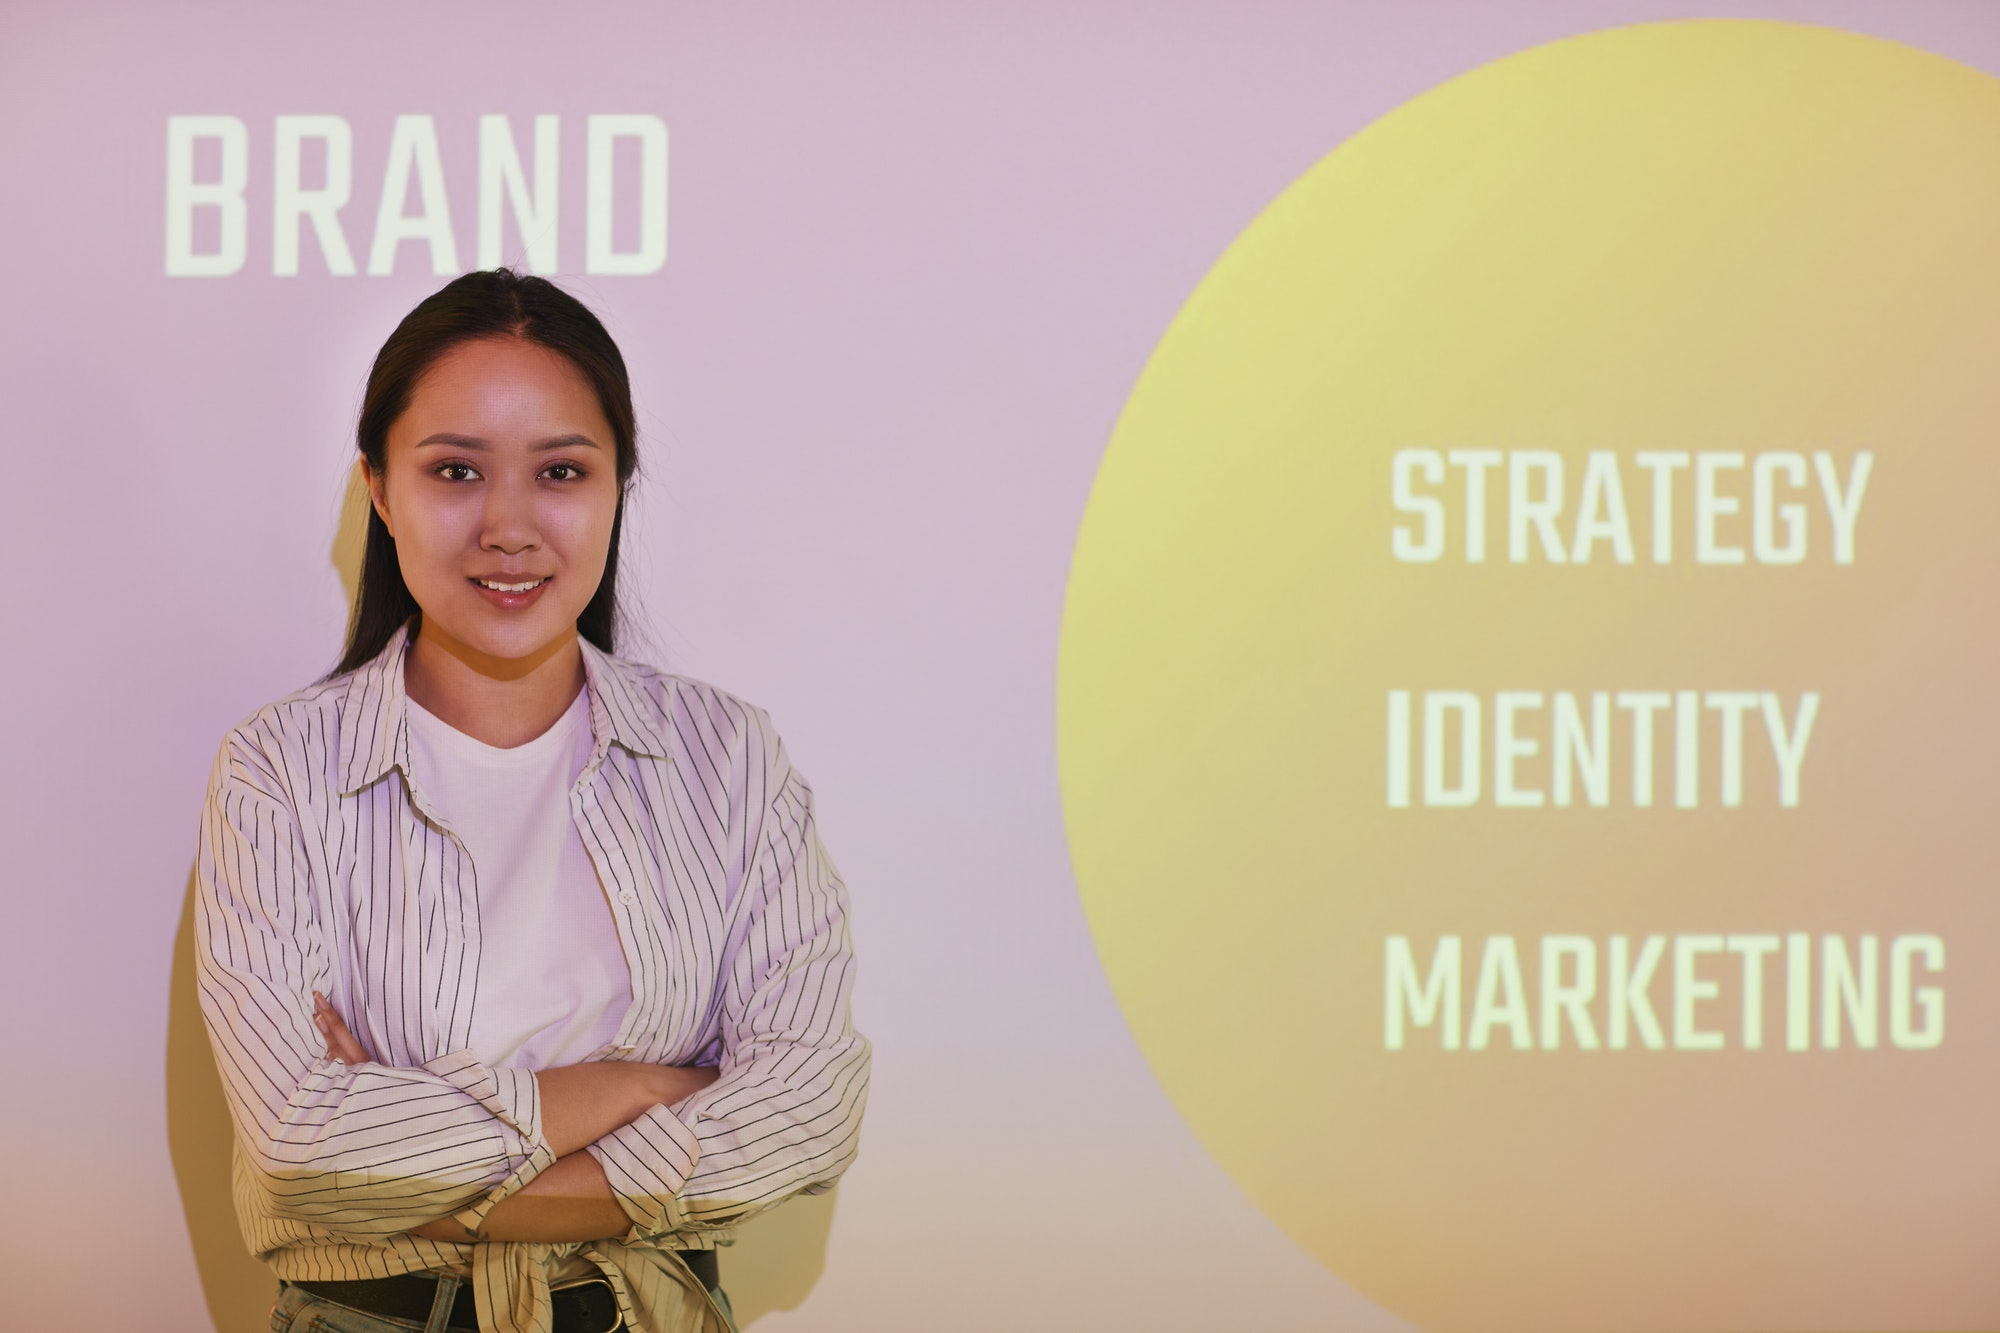 Presentation of brand manager